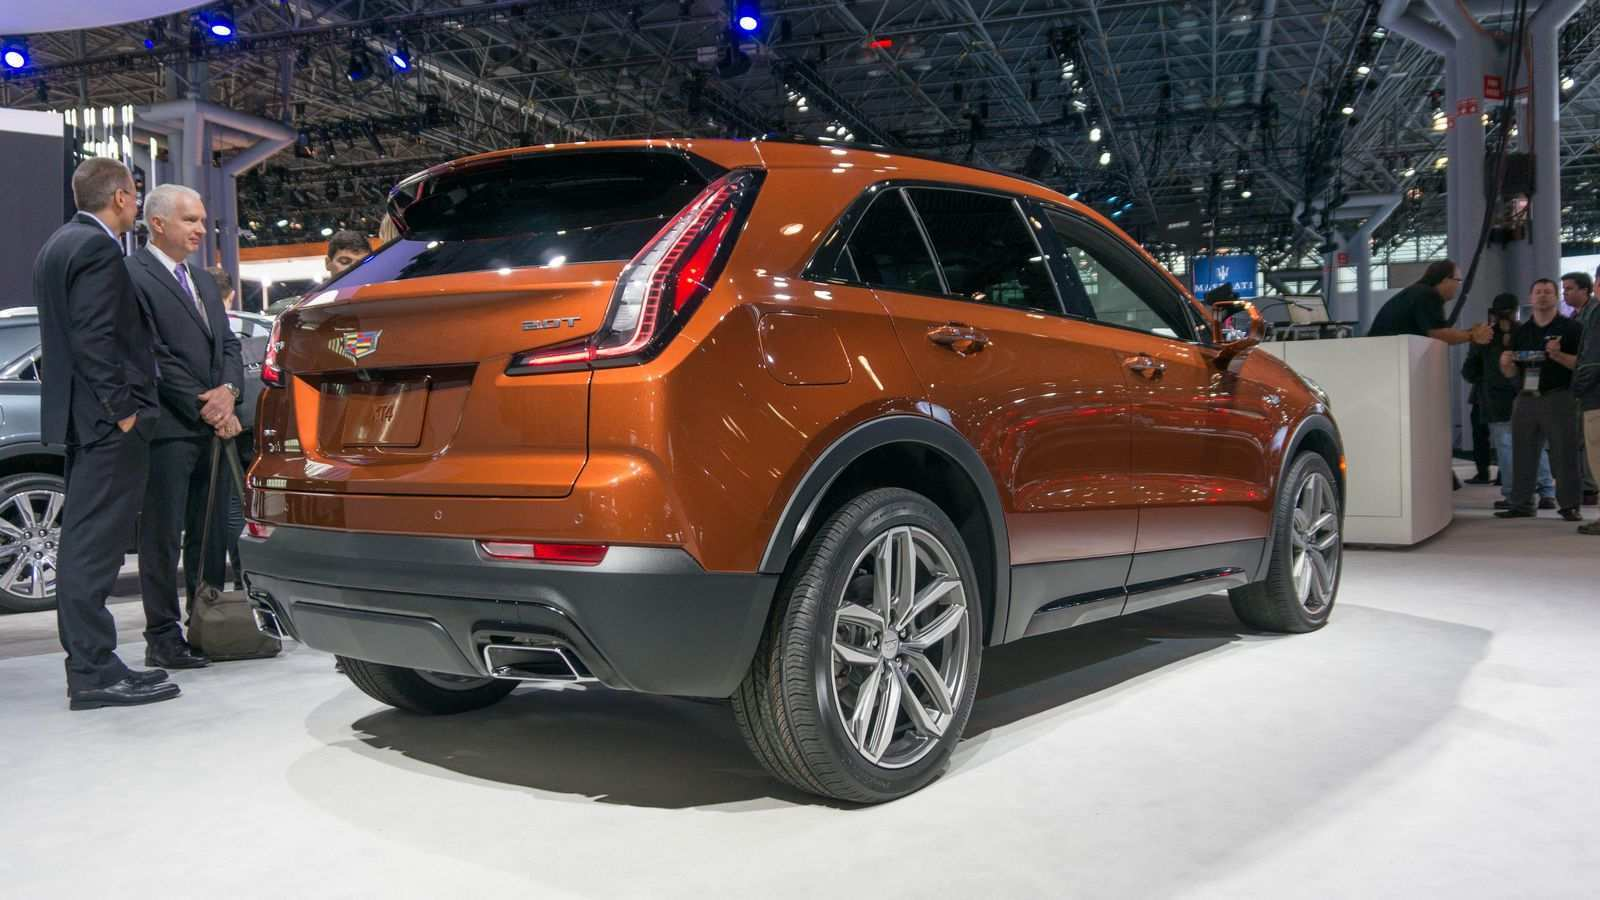 58 All New New Cadillac Xt4 2019 Images Engine Specs for New Cadillac Xt4 2019 Images Engine